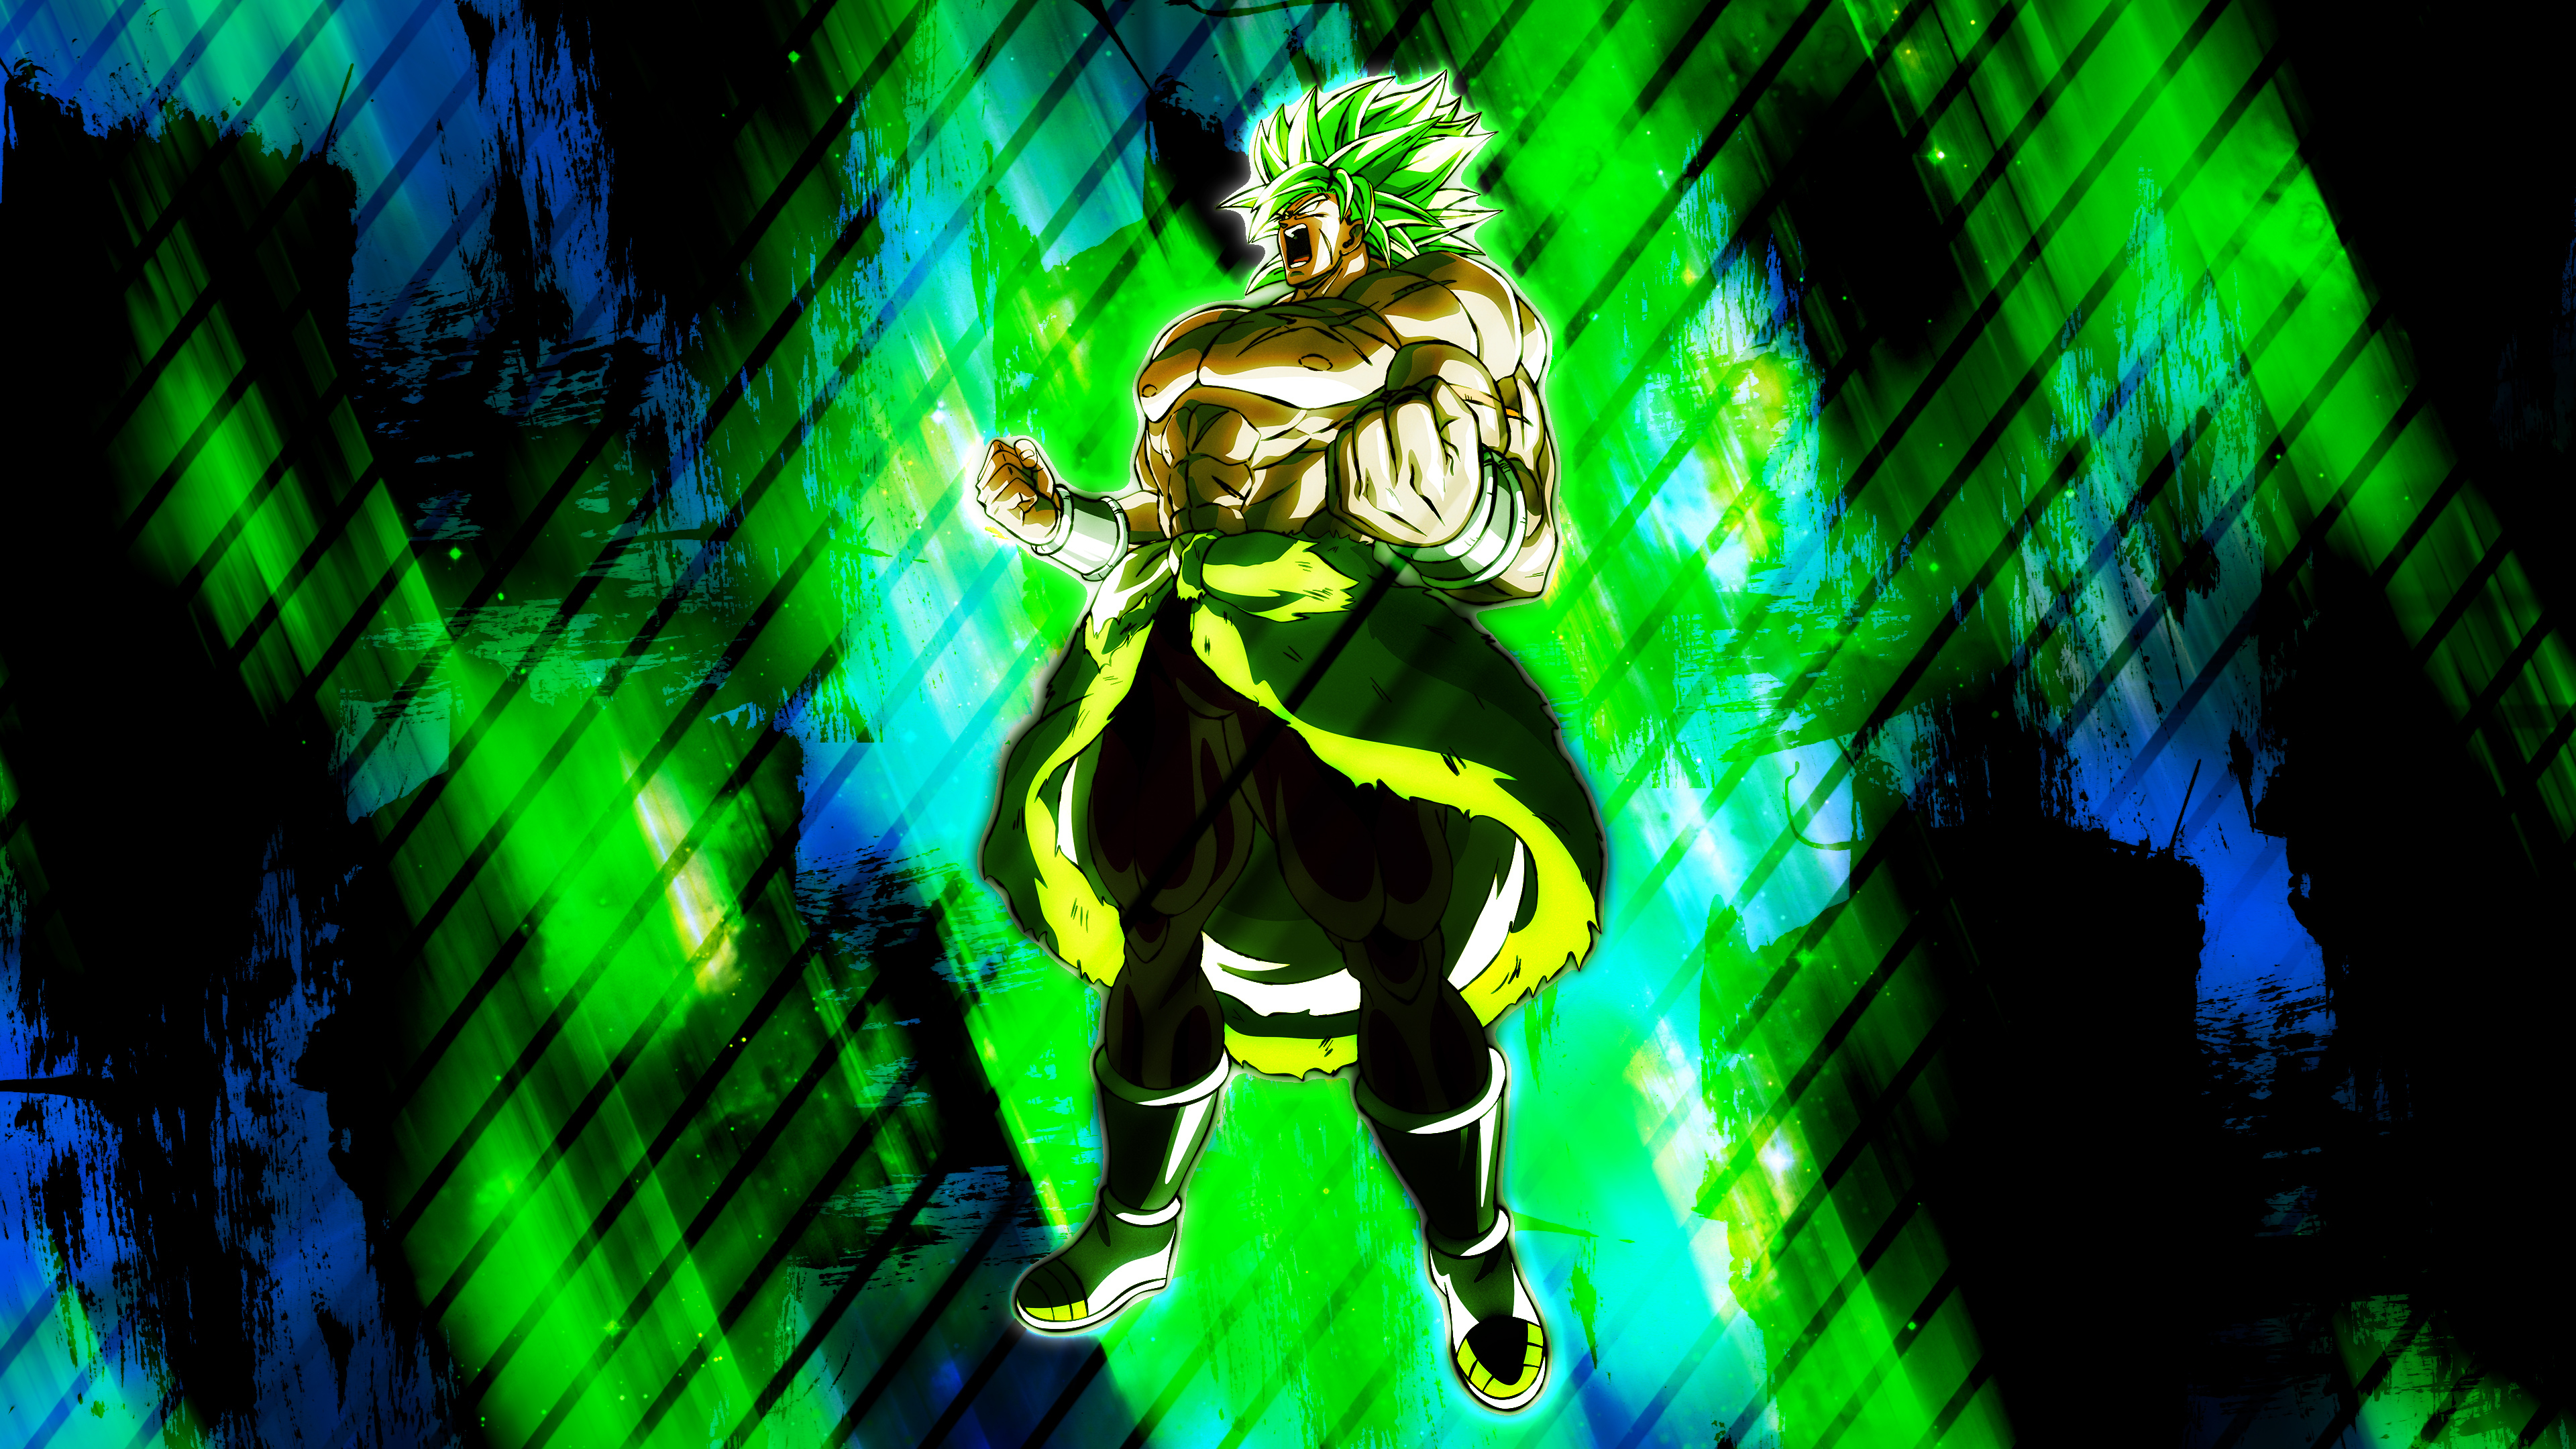 1242x2688 Unstoppable Broly 4k Iphone Xs Max Wallpaper Hd Anime 4k Wallpapers Images Photos And Background